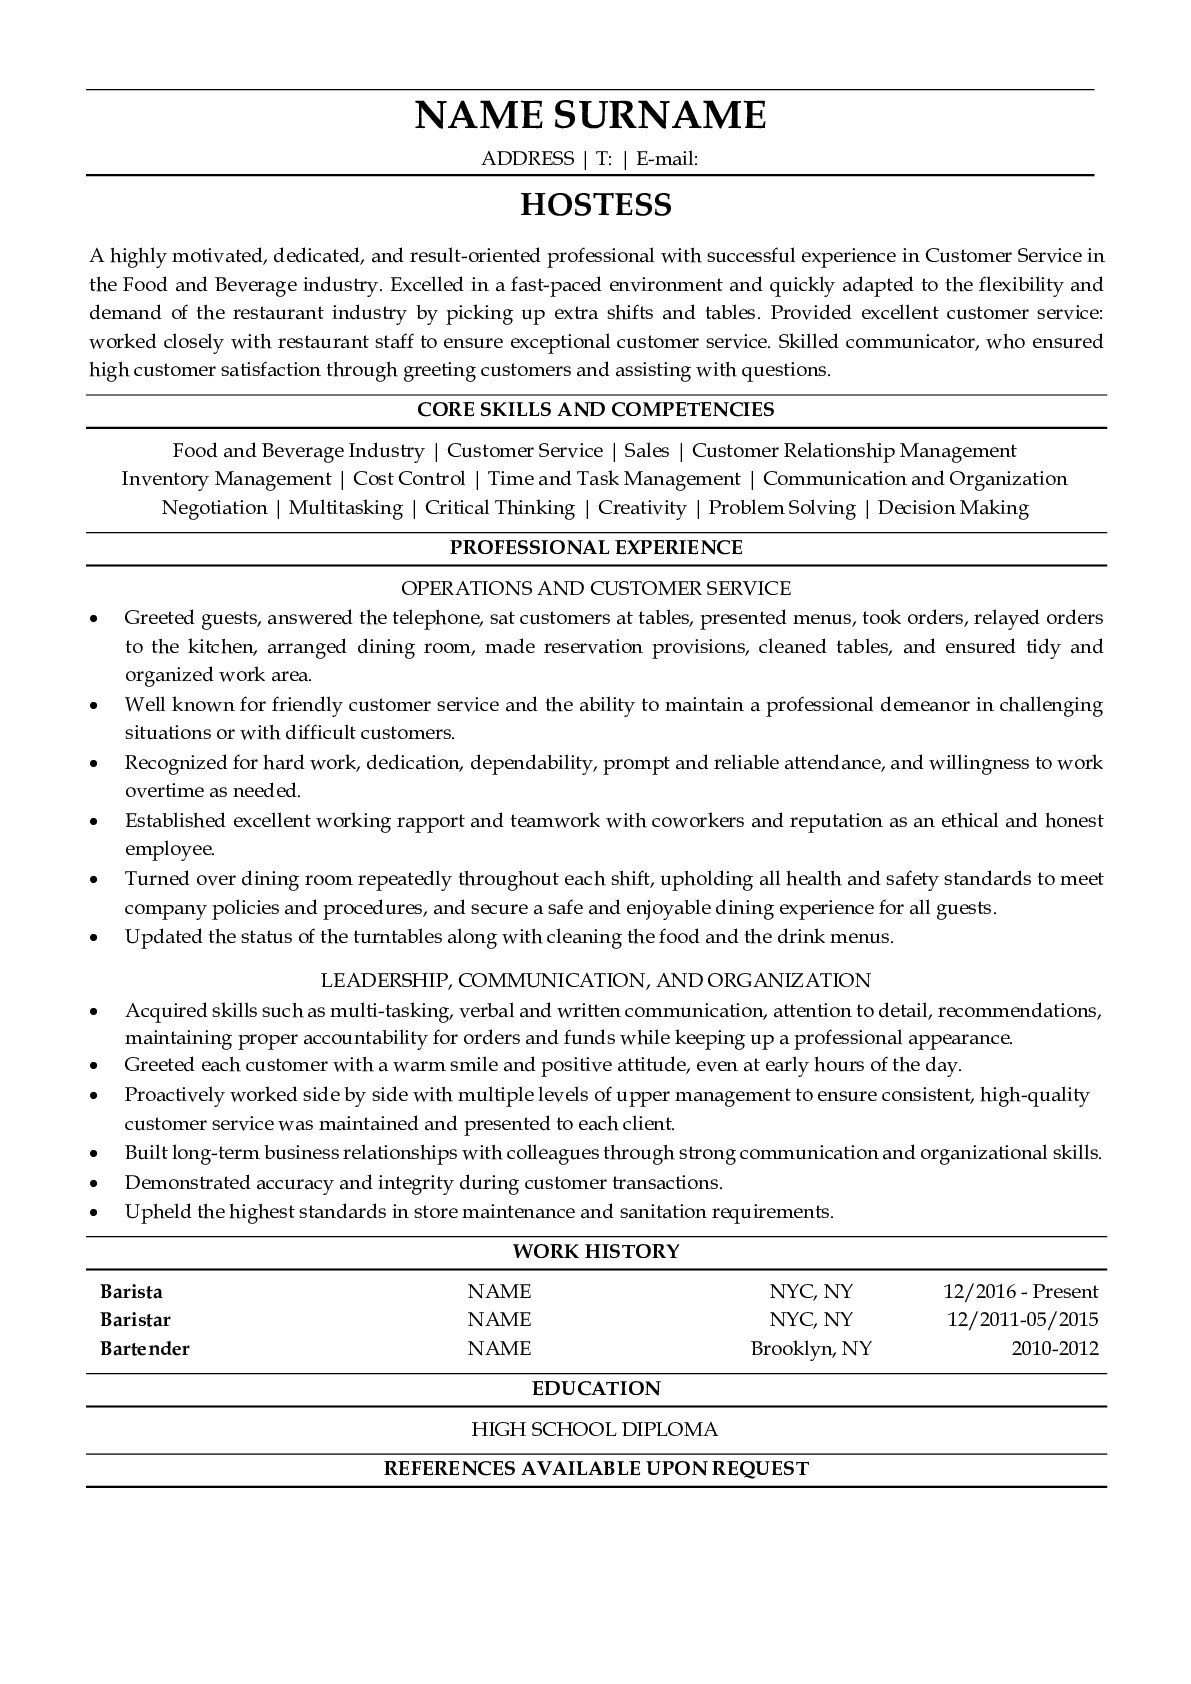 Resume Example forHostess